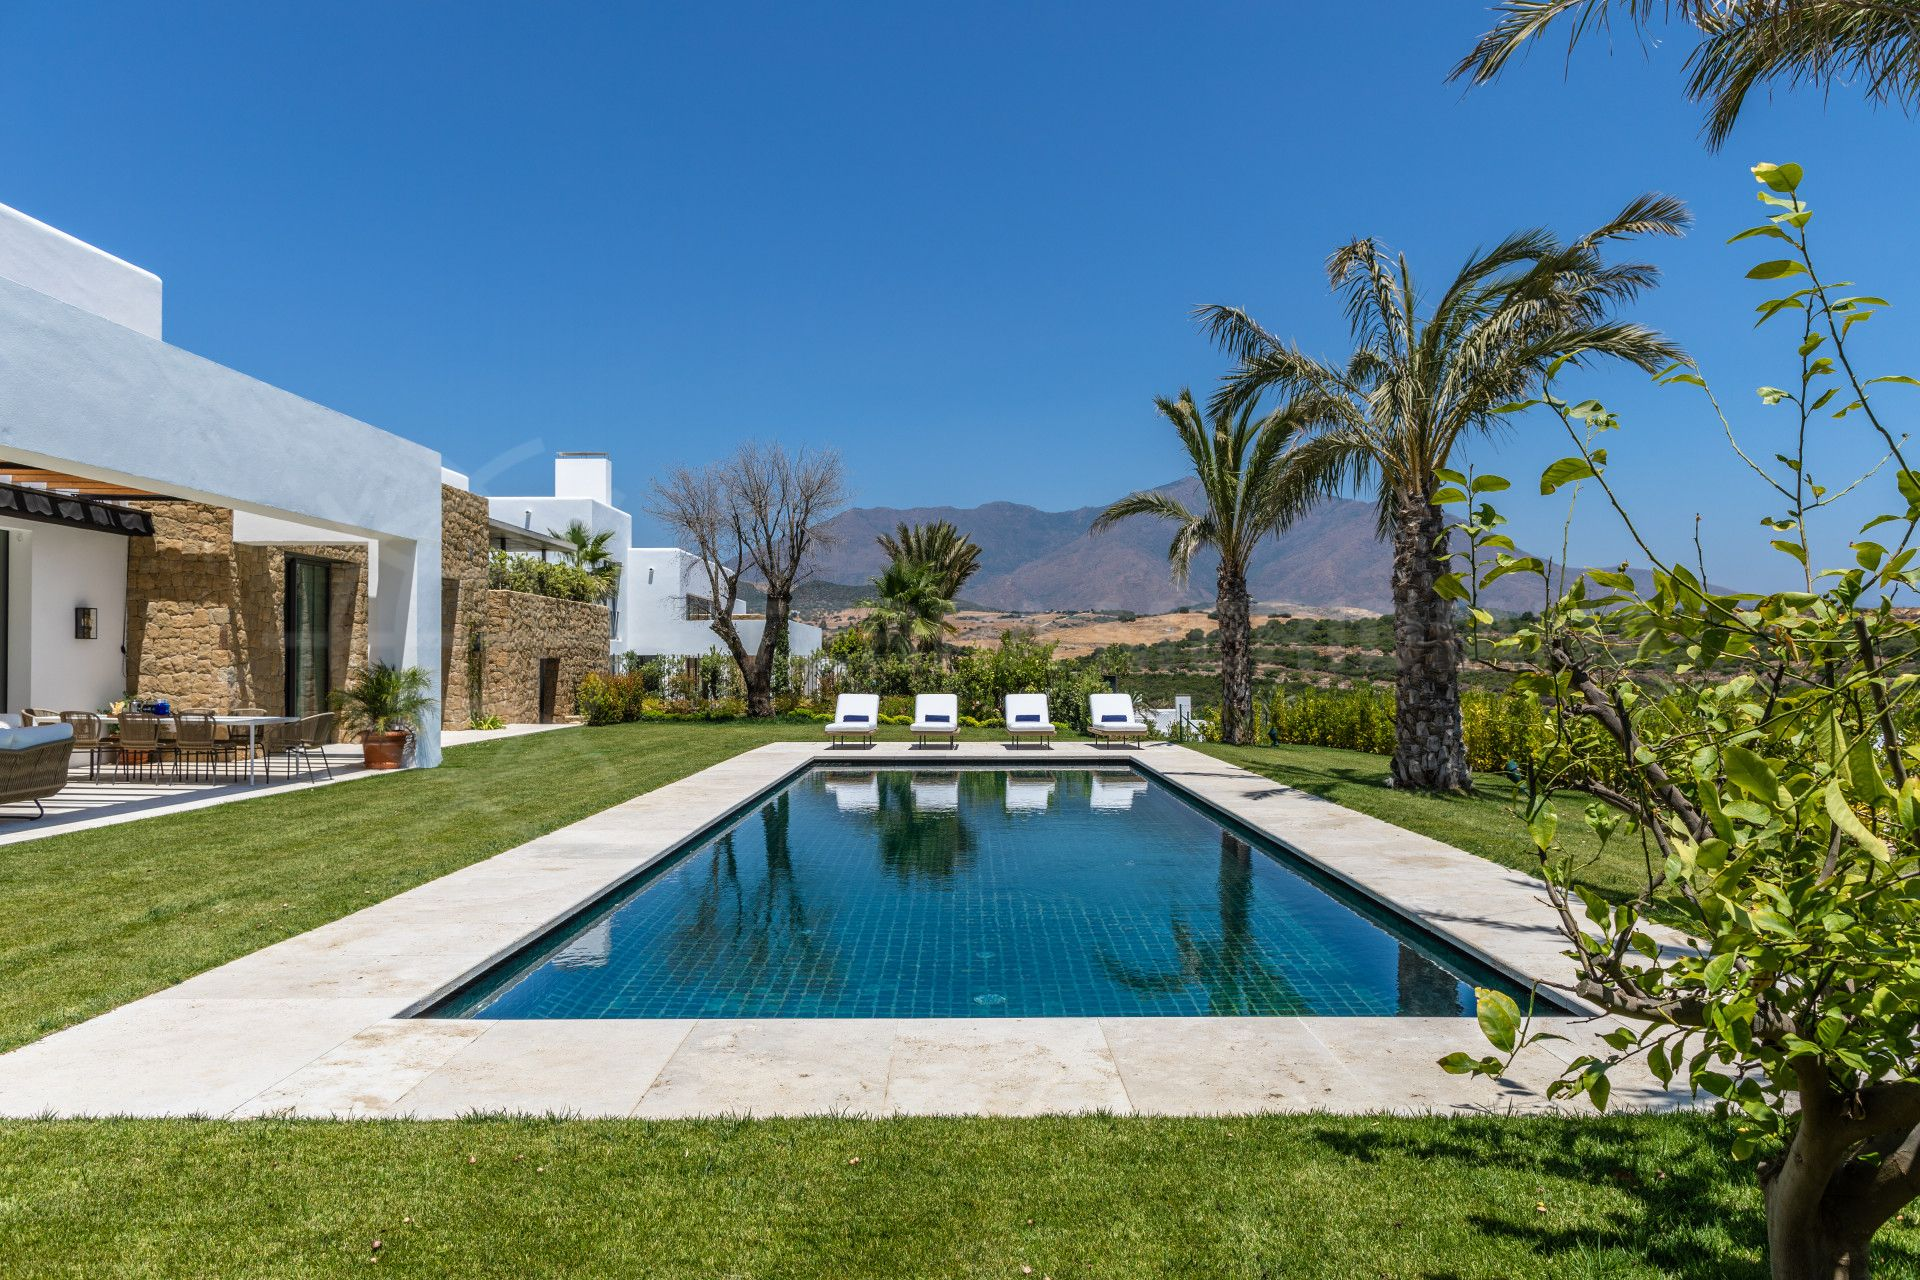 Finca Cortesin: quintessential Andalucía at its most luxurious